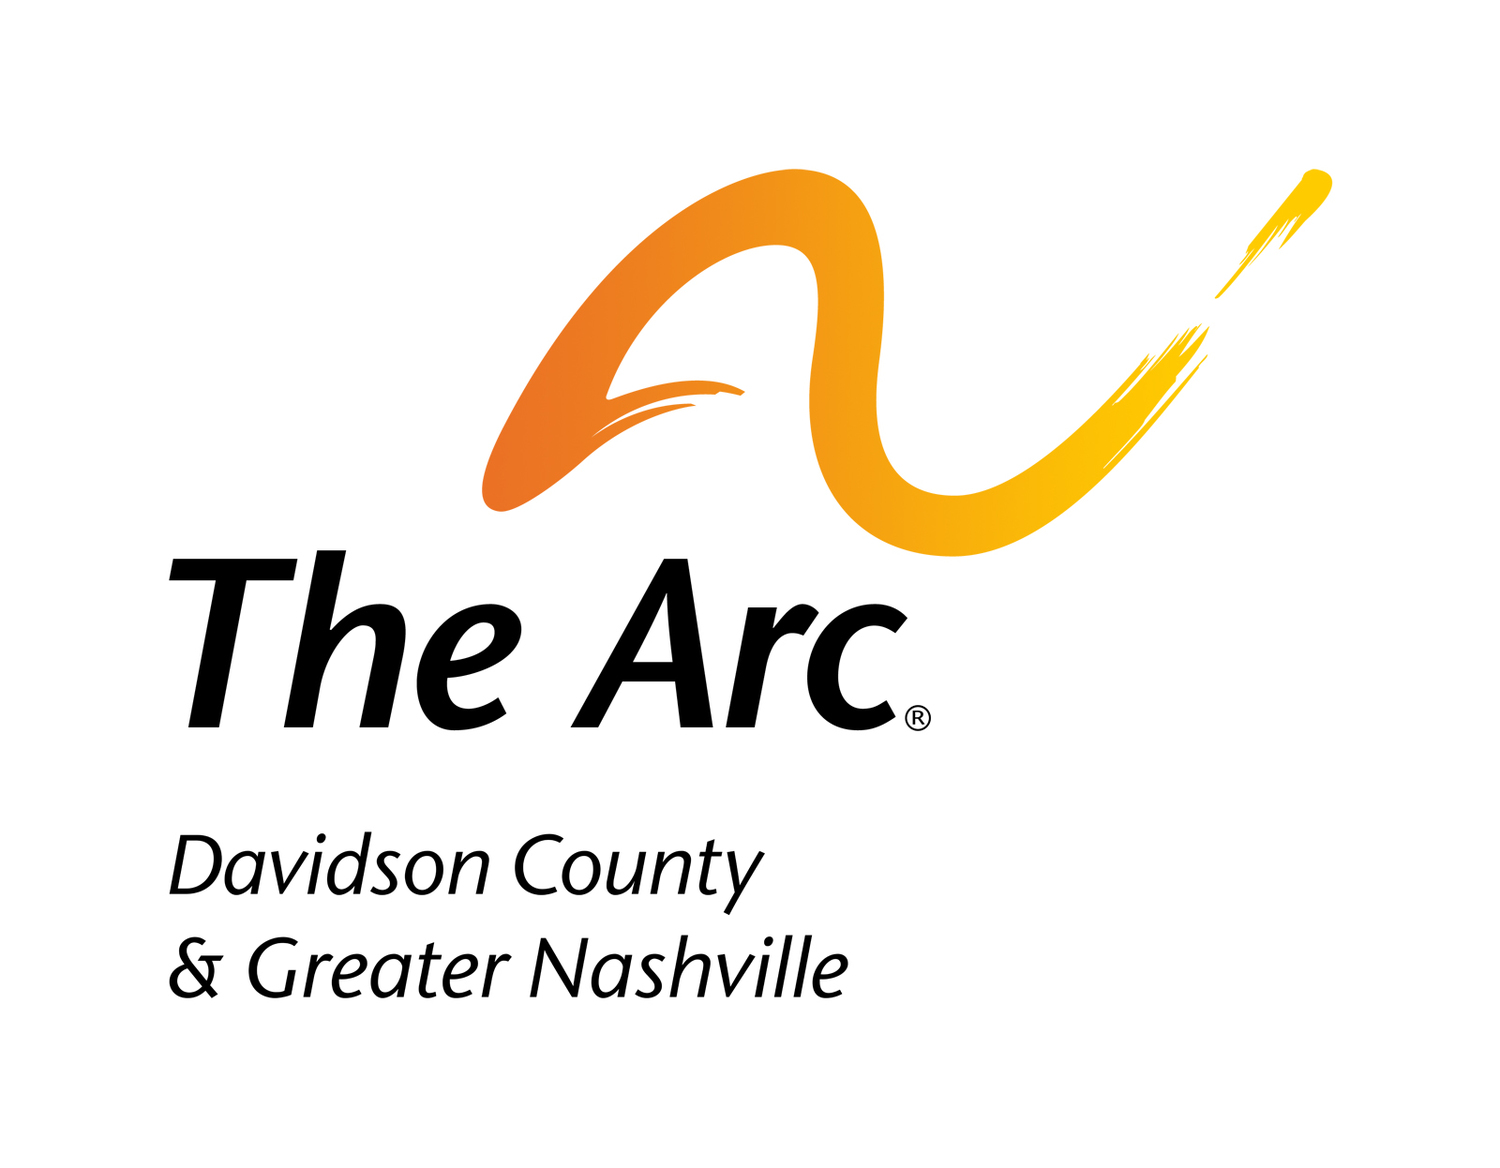 The Arc Davidson County and Greater Nashville